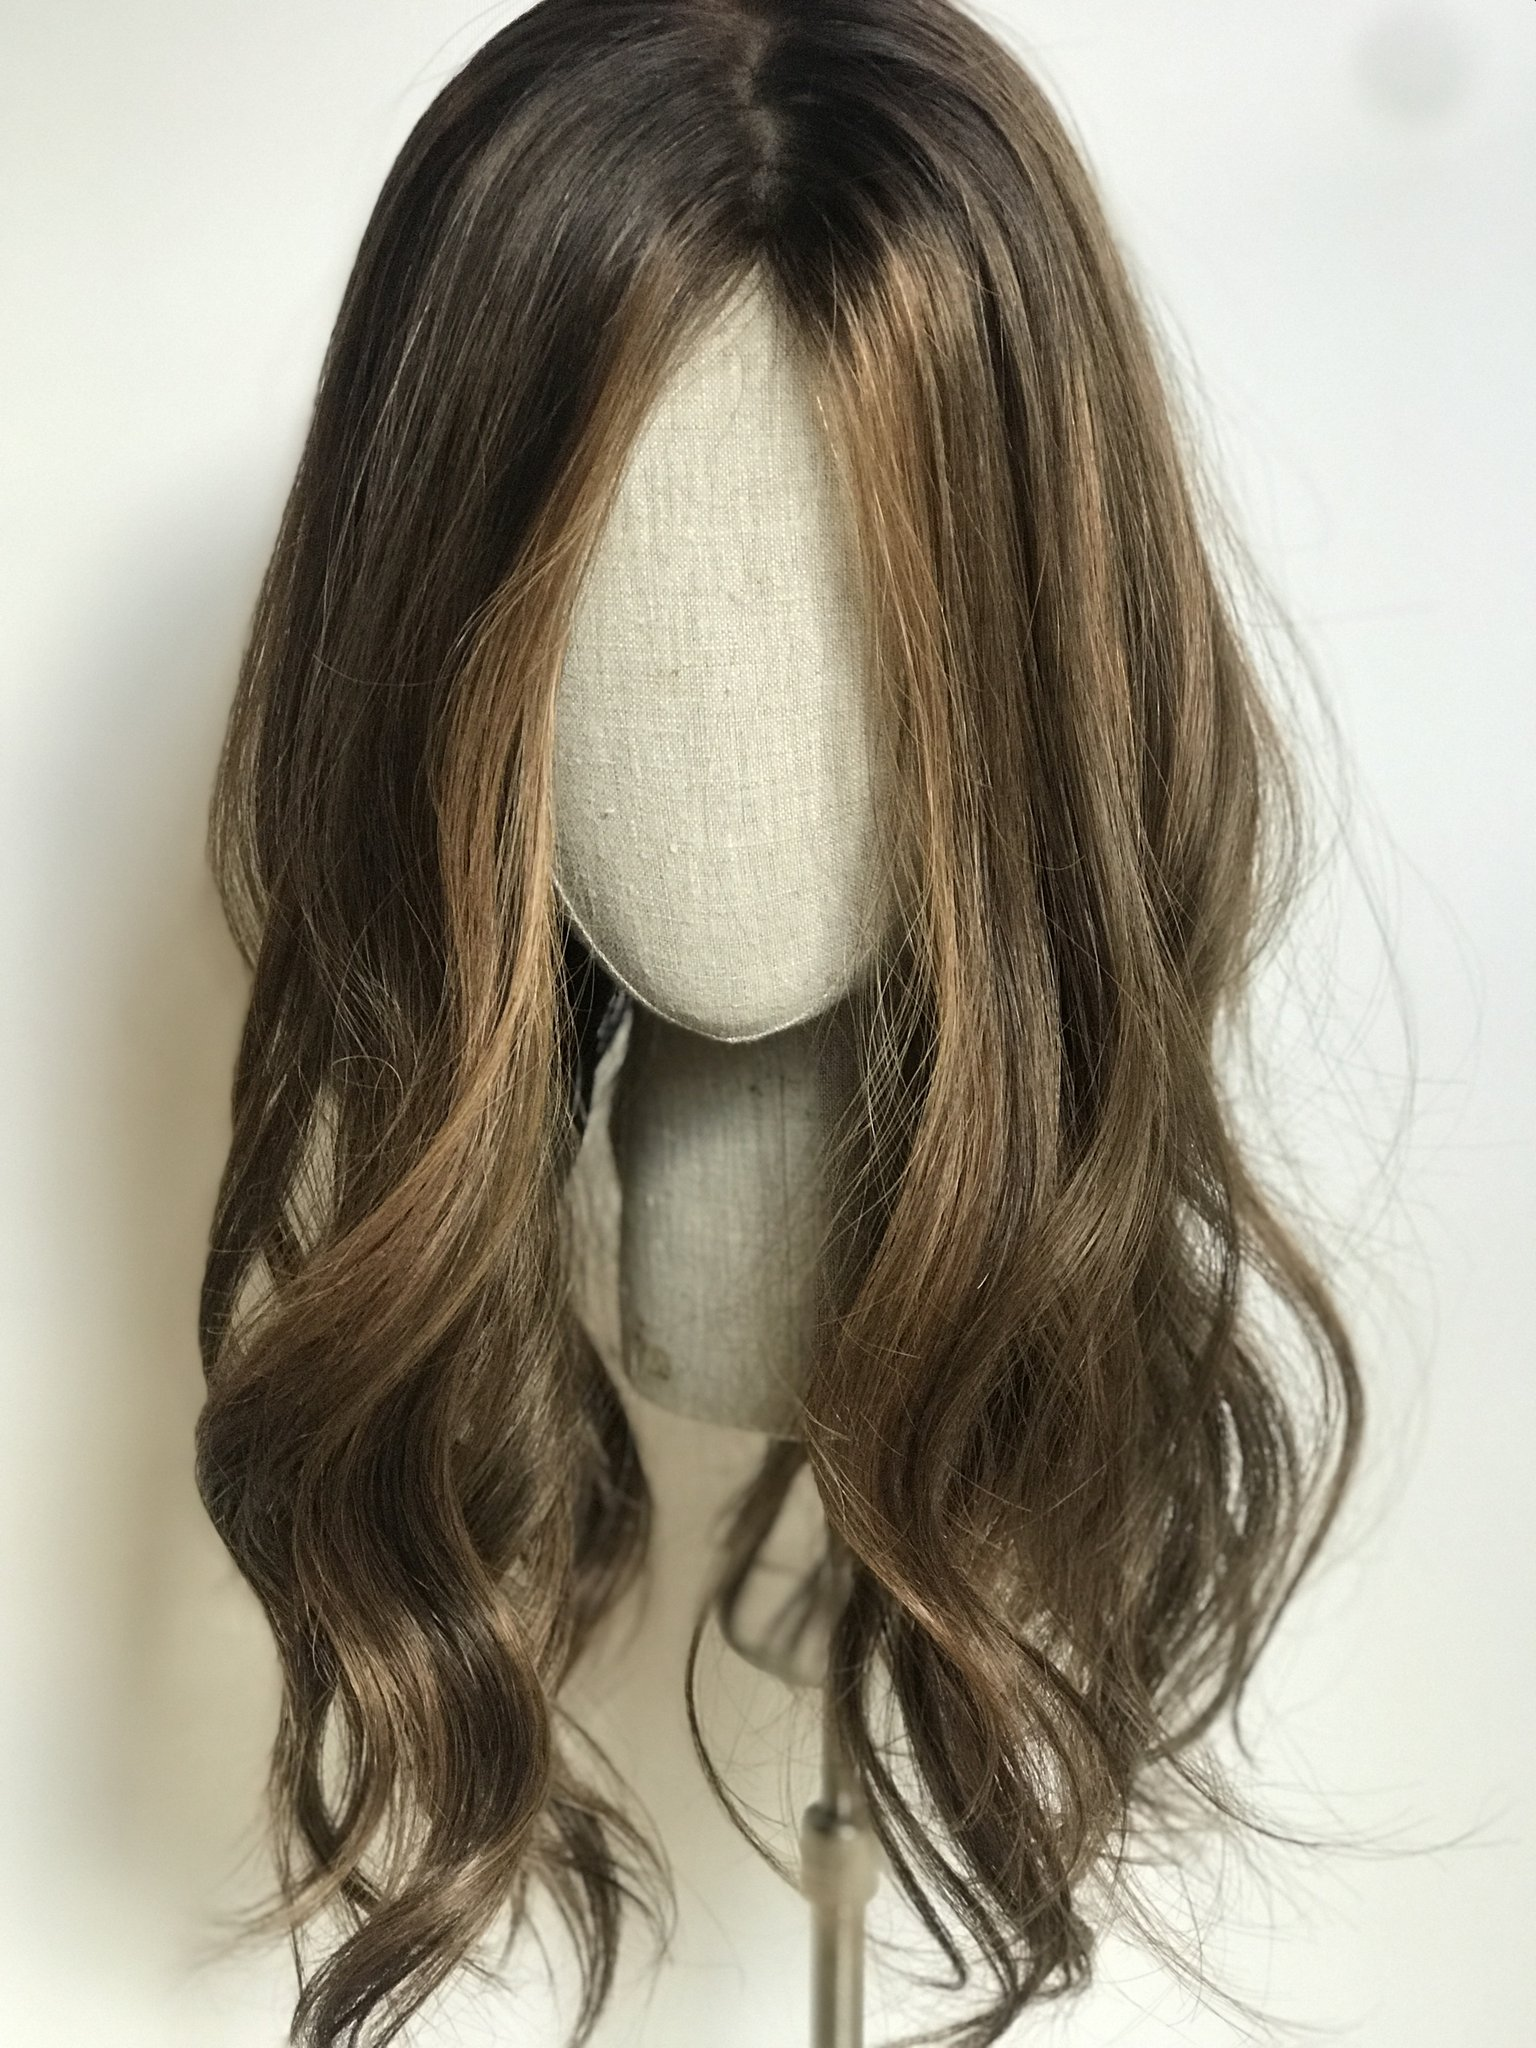 MySecret Wigs Shows How Human Hair Toppers Can Perfectly Enhance Hairstyle of Women Complaining of Hair Thinning